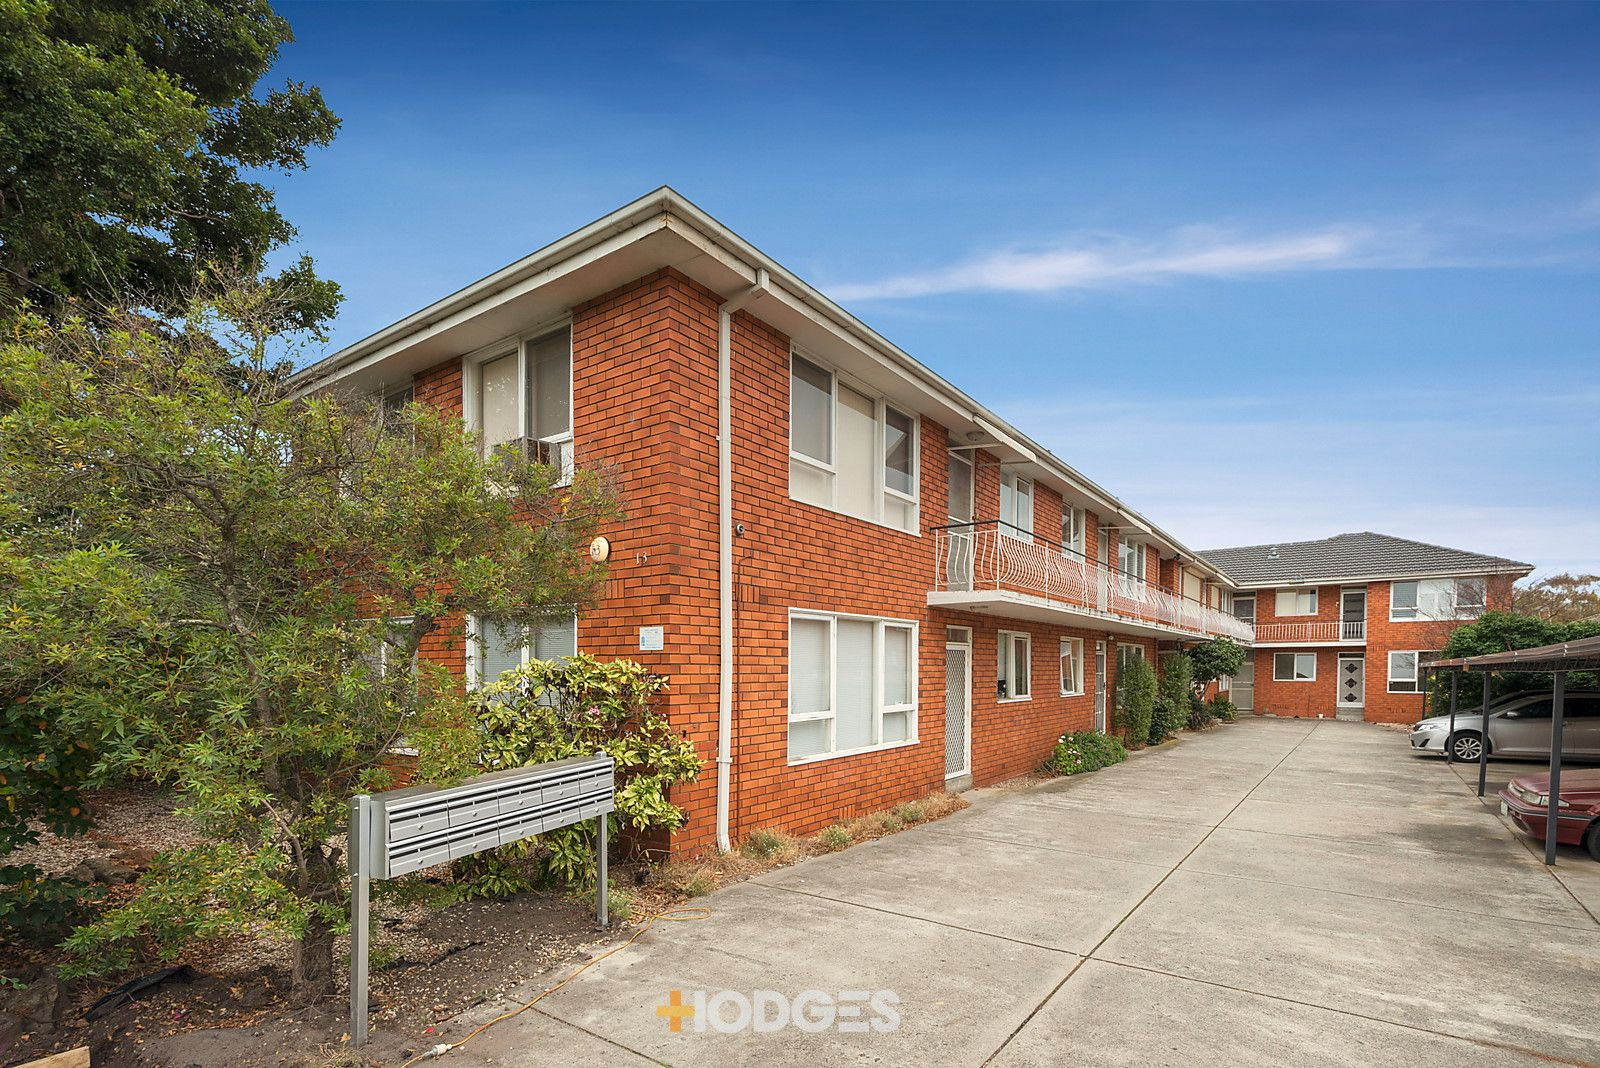 7/13 Waratah Avenue, Glen Huntly VIC 3163, Image 0